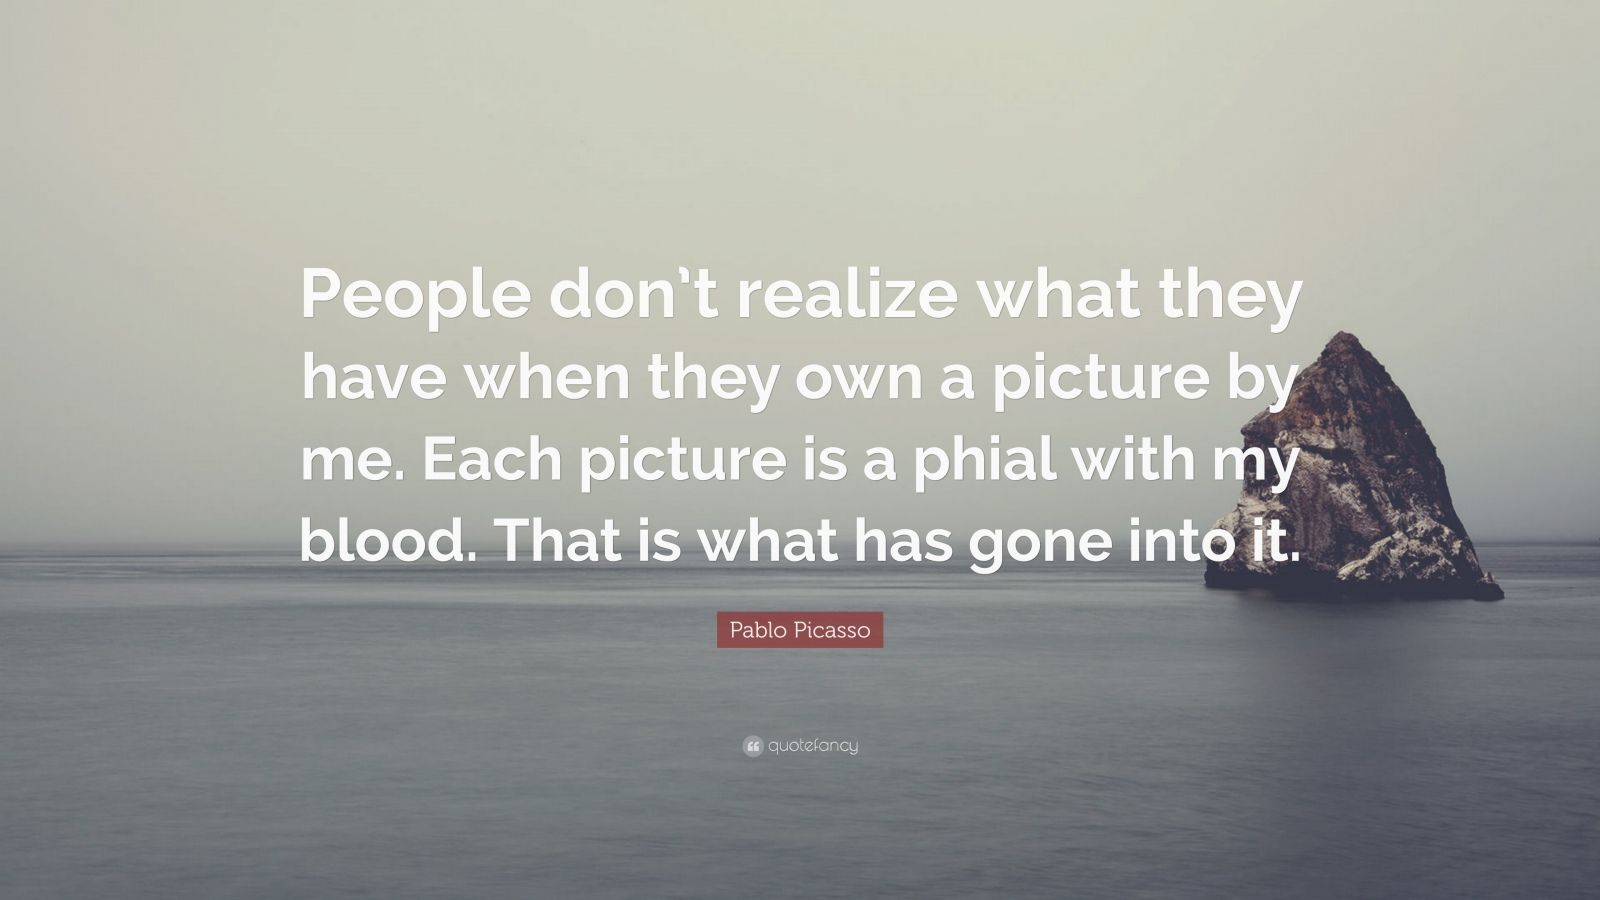 """Pablo Picasso Quote: """"People don't realize what they have when they own a picture by me. Each picture is a phial with my blood. That is what has gone into it."""""""